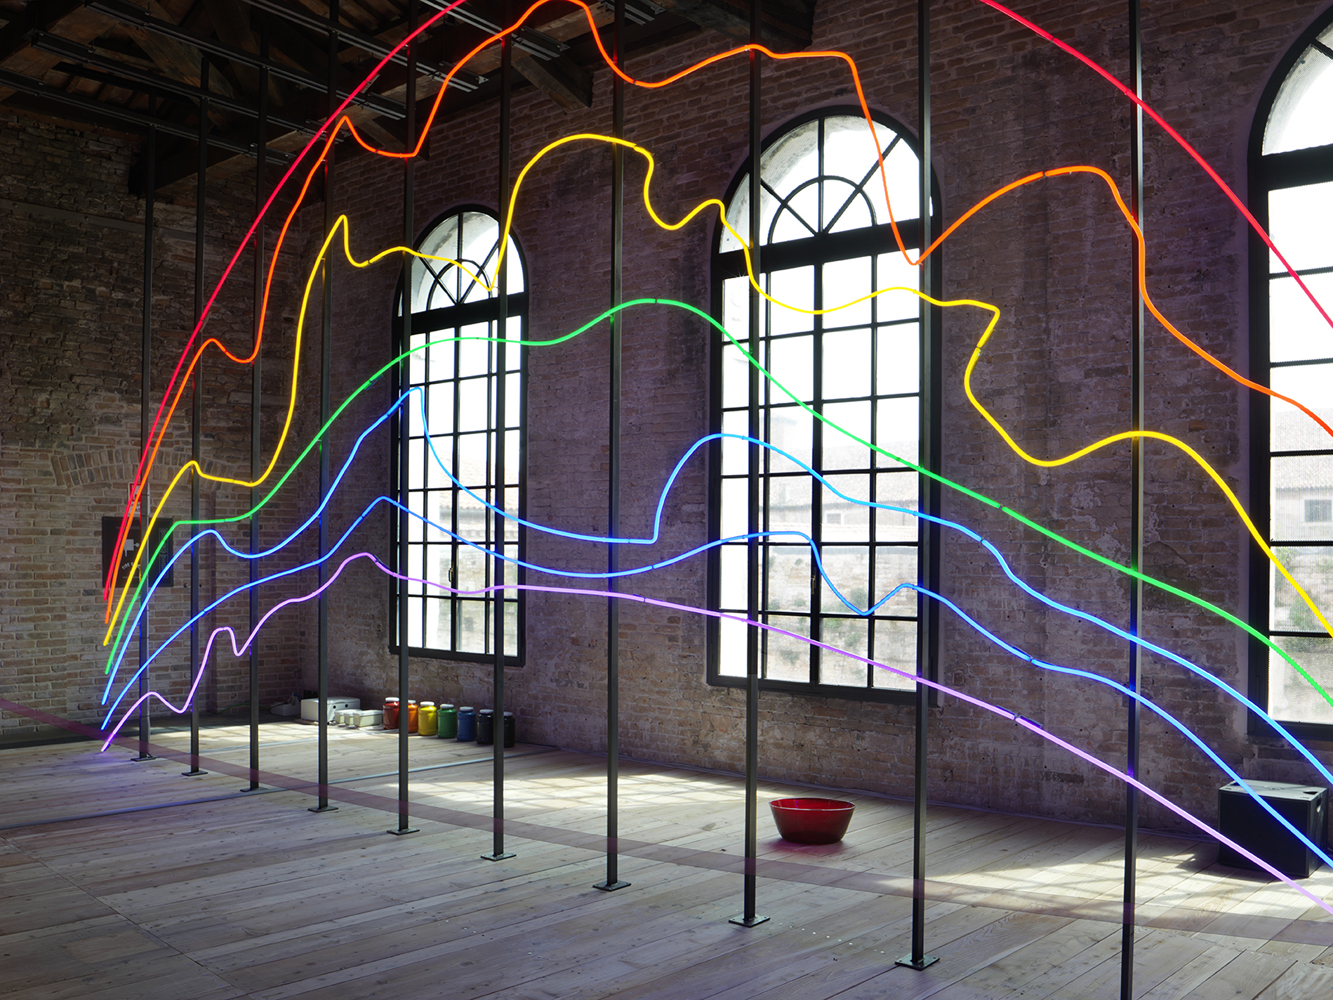 Sarkis Zabunyan 'Respiro'. Turkish Pavillon, 56th Venice Art Biennale. Neon and metal structure. Production and installation: Neonlauro. April 2015.